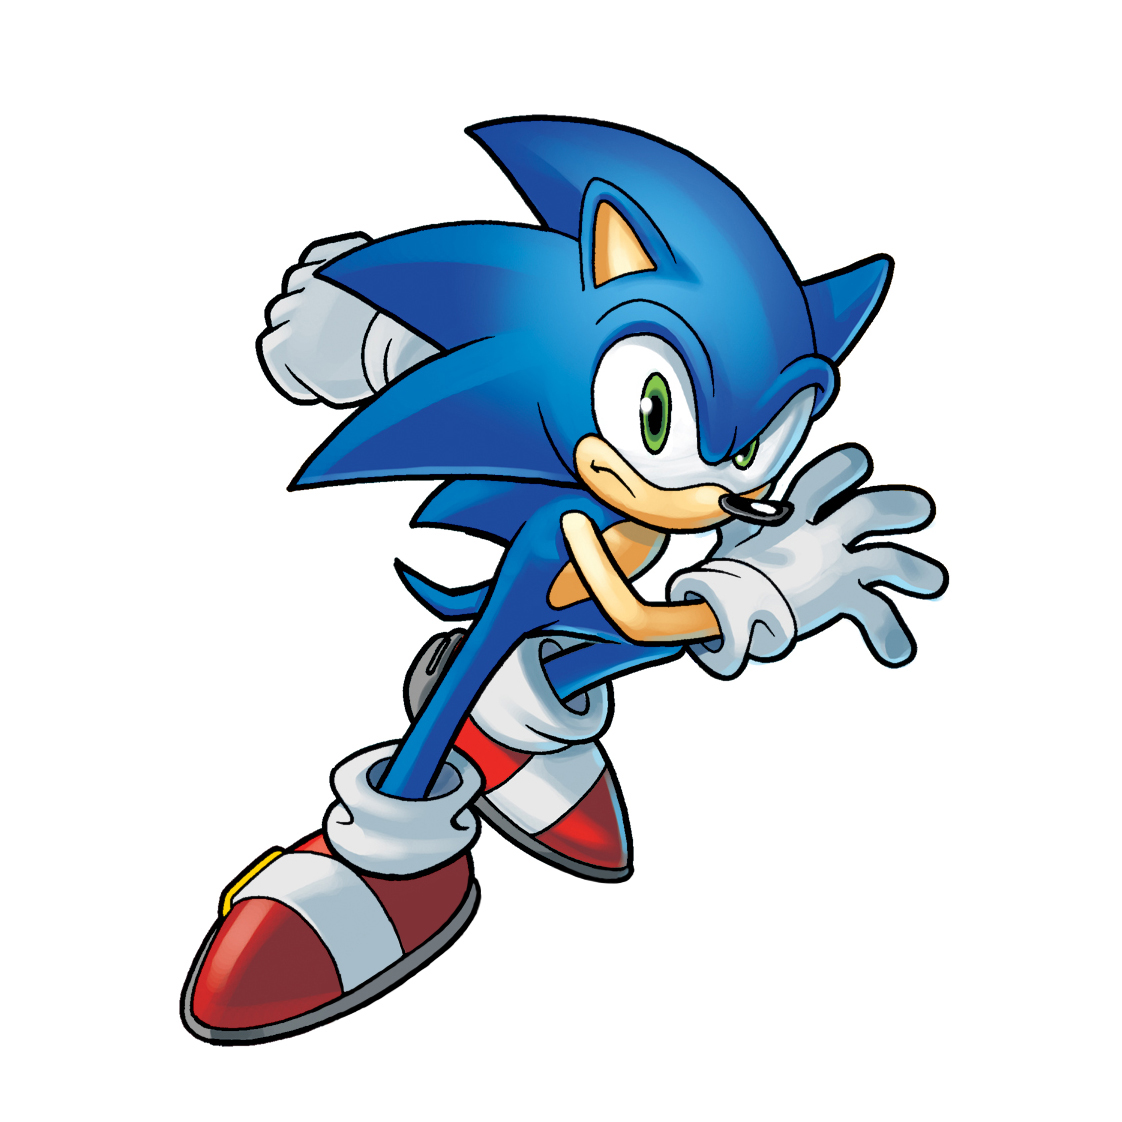 [RUMOR] - The Archie Sonic Comic Series Possibly Coming to An End?